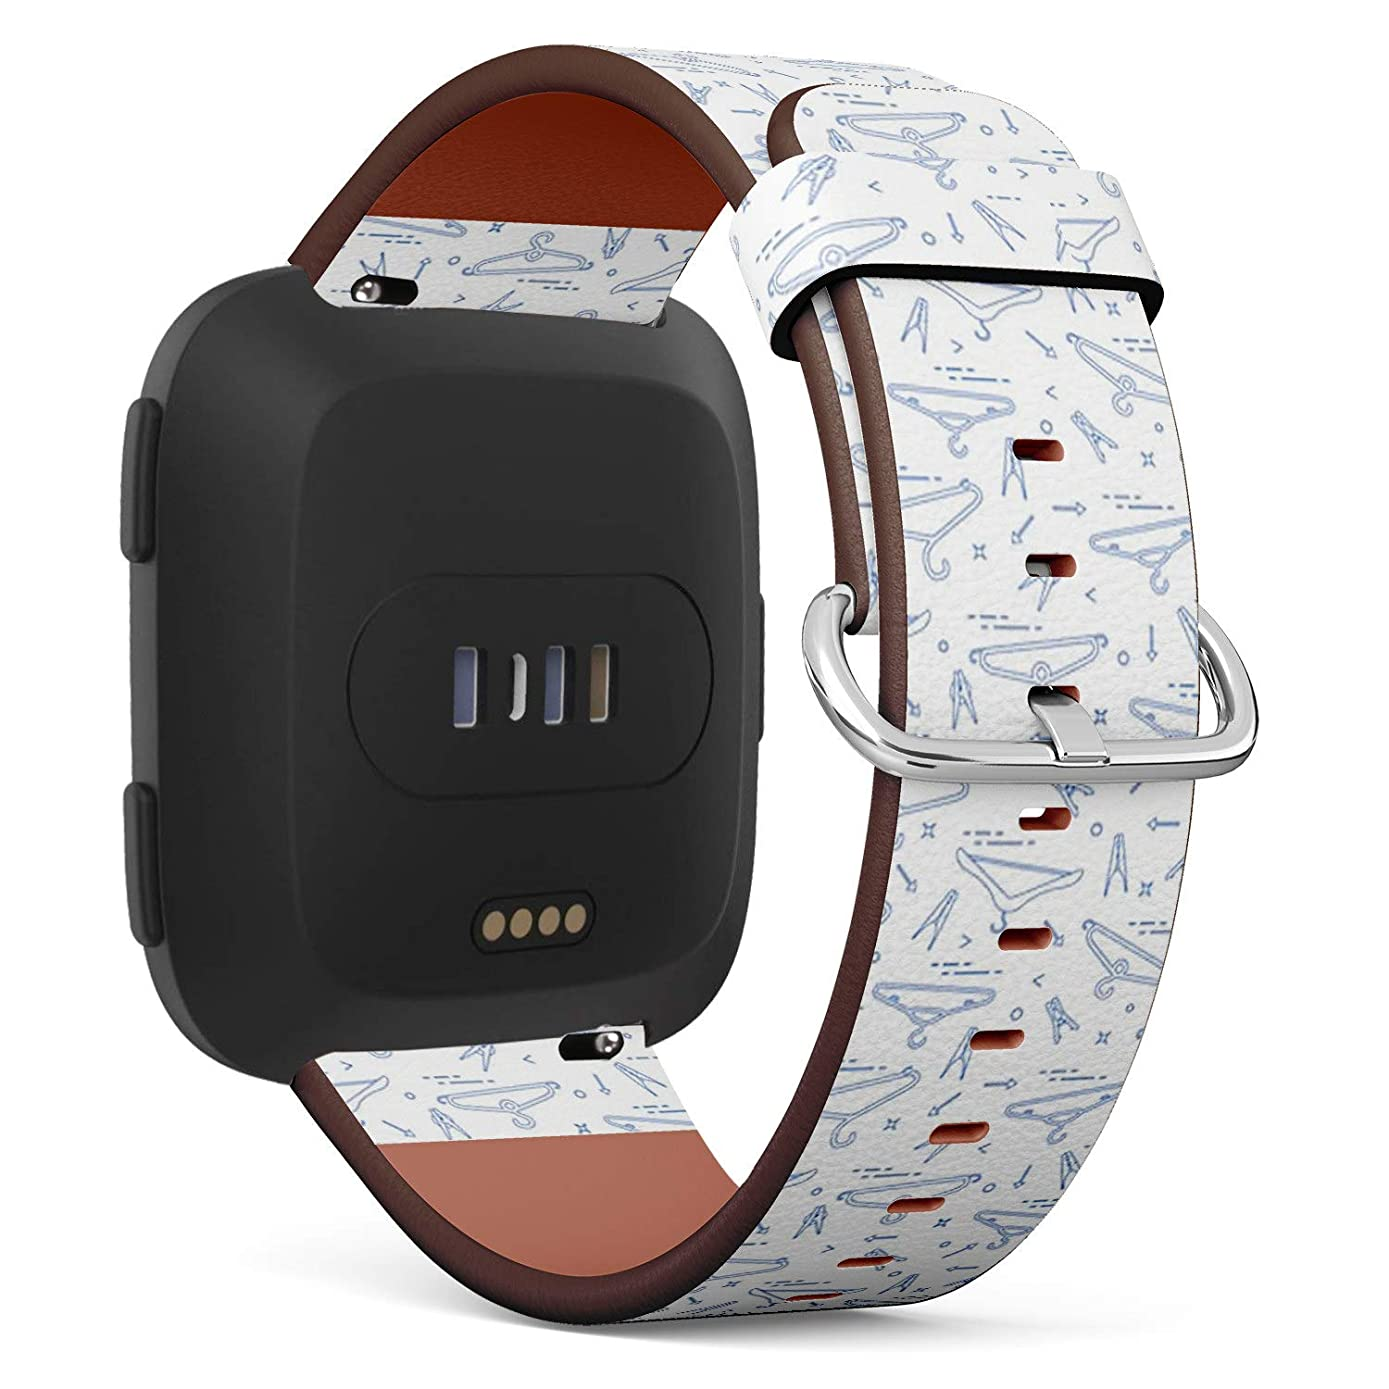 Compatible with Fitbit Versa - Quick-Release Replacement Accessory Leather Band Strap Bracelet Wristbands (Clothes Hangers Clothespins)